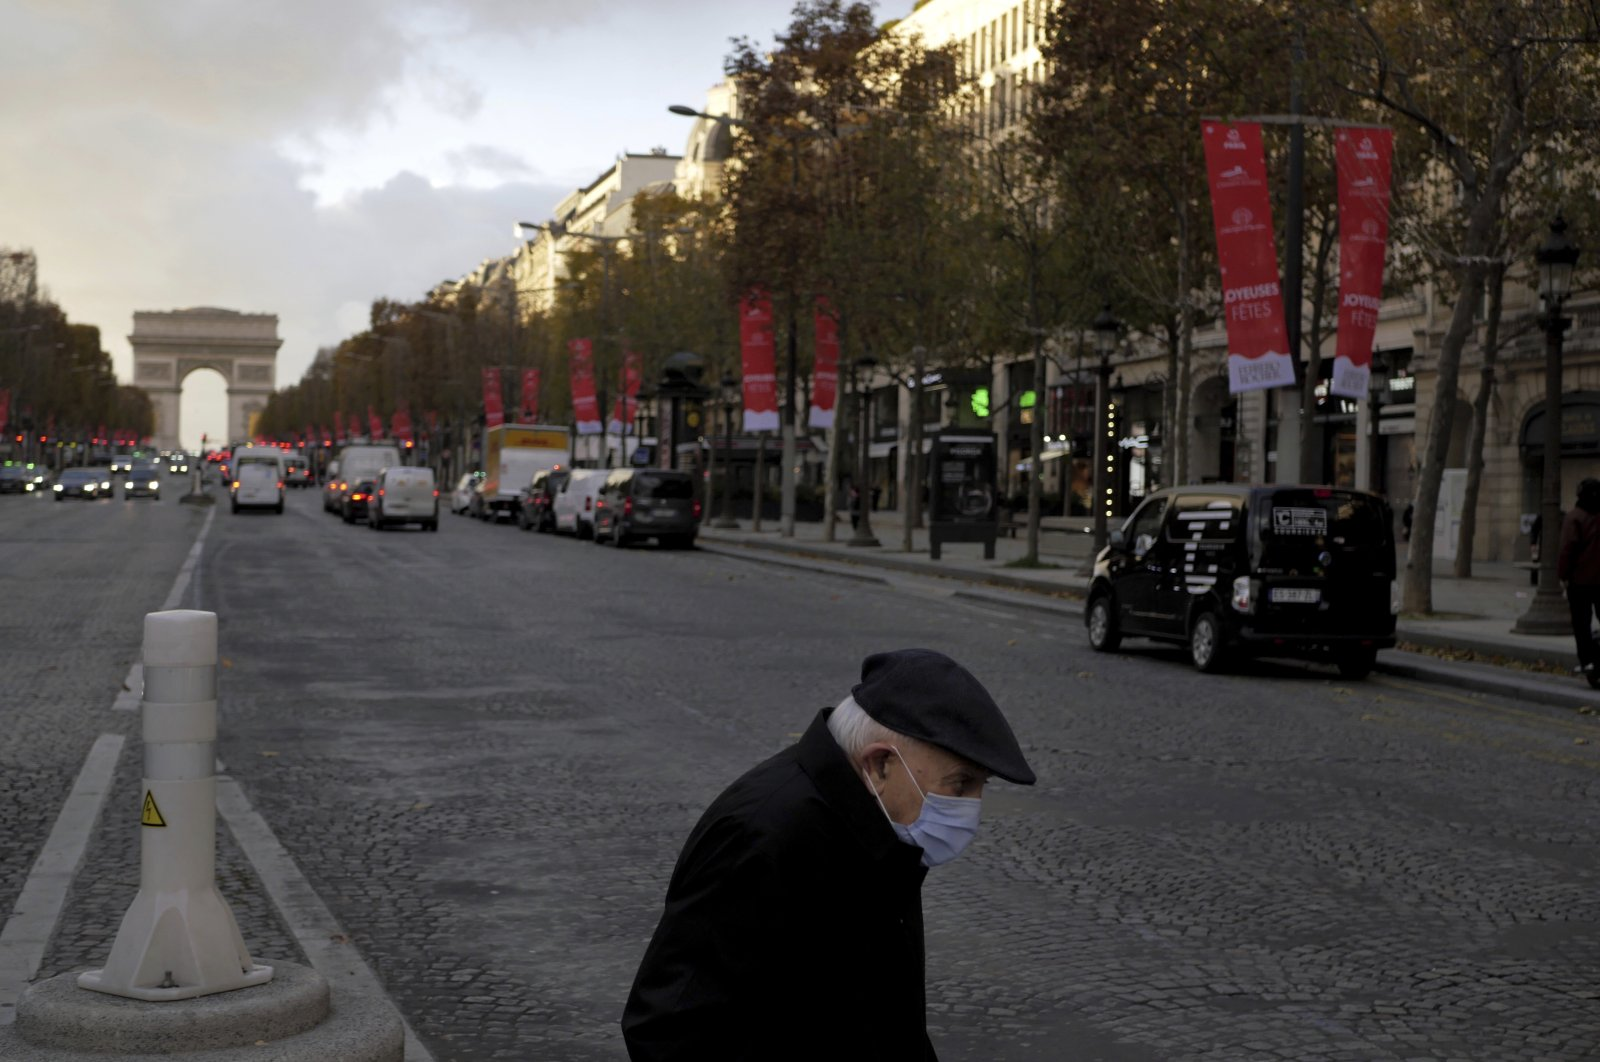 An elderly man wears a mask as he walks on the Champs Elysee in Paris, Nov. 19, 2020. (AP Photo)